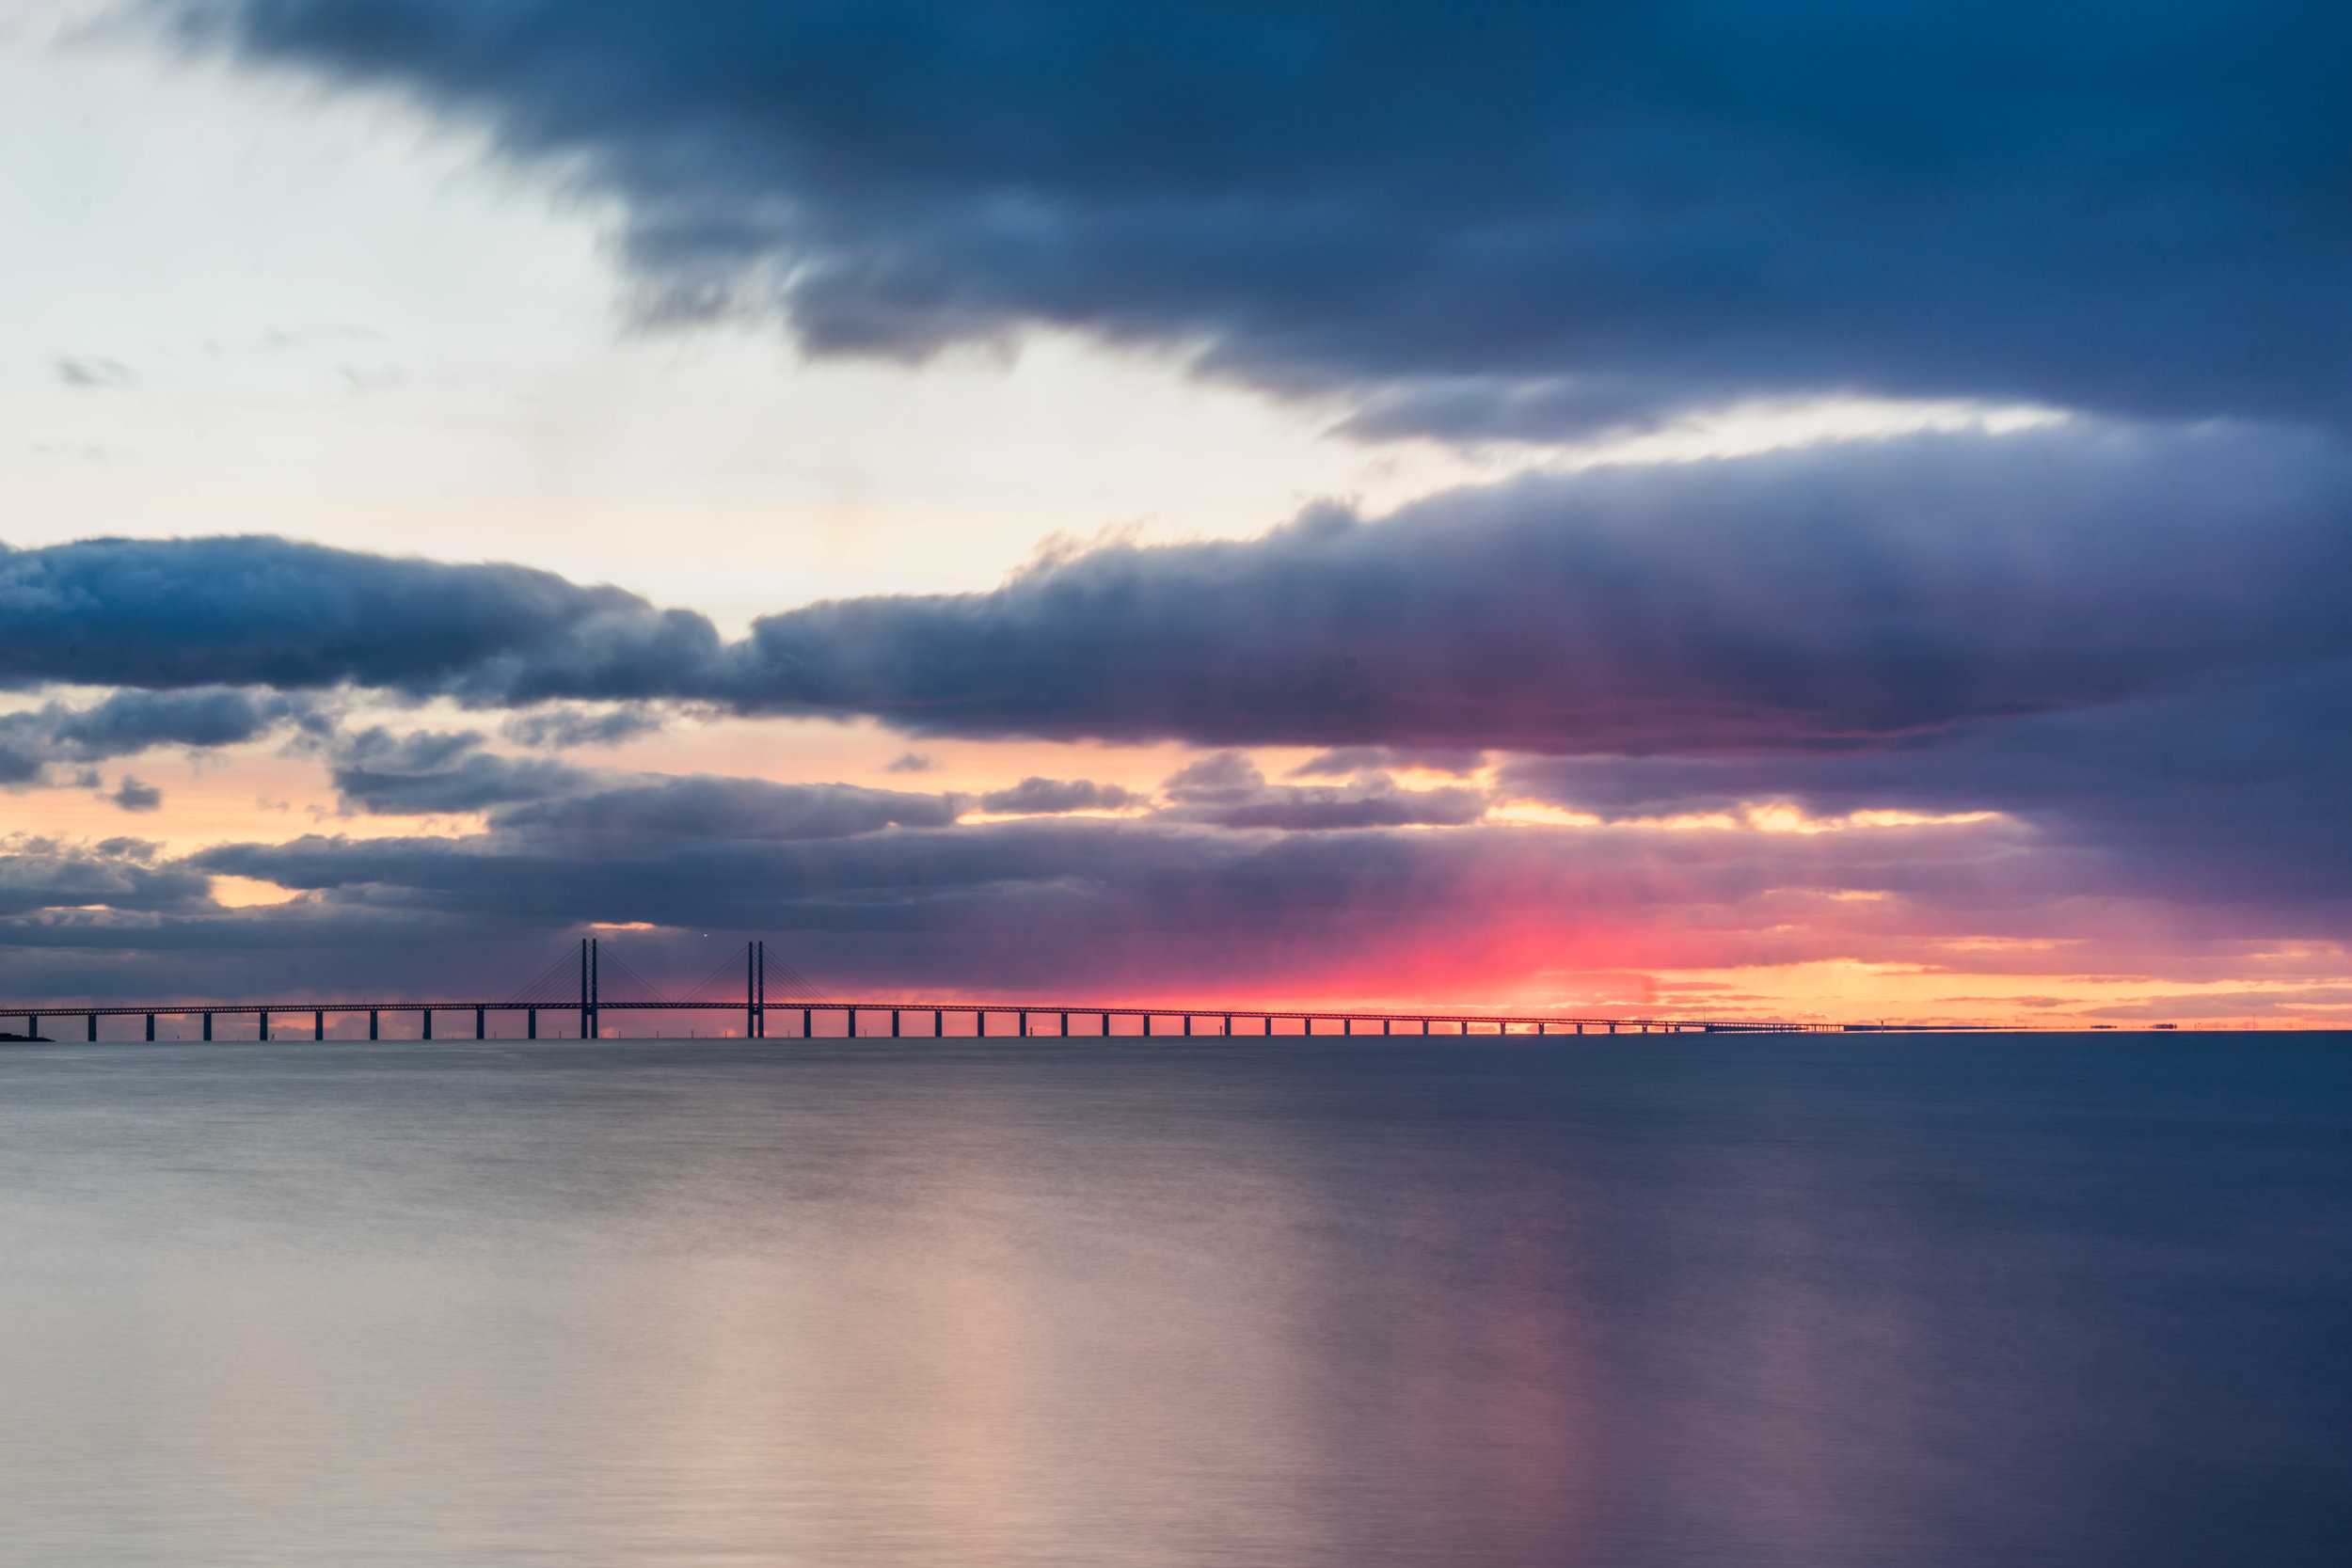 Sunset at Oresund Bridge Malmo to Copenhagen